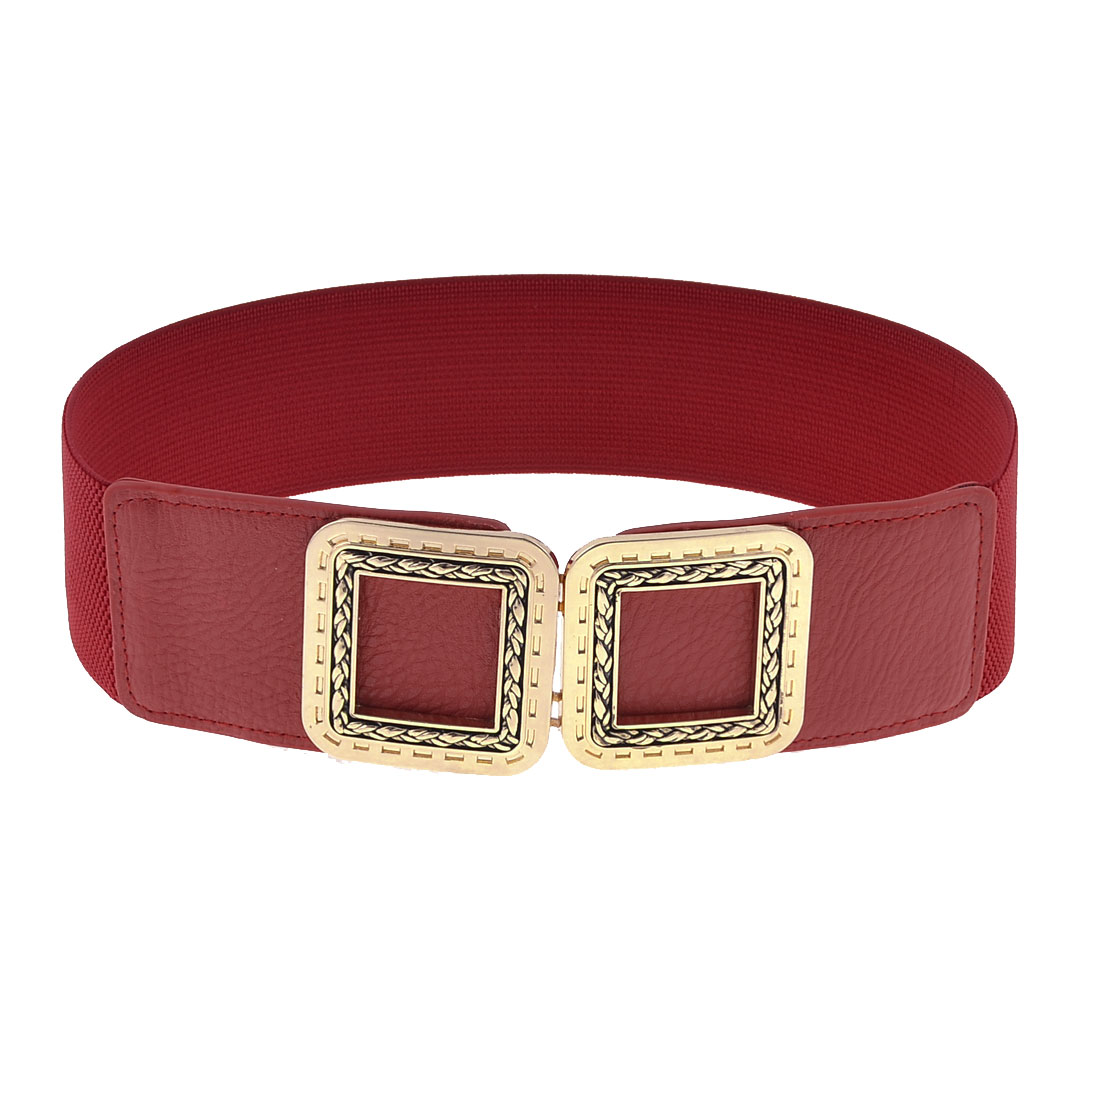 Lady Square Shaped Hollow Interlocking Buckle Stretch Wasitbelt Cinch Band Red